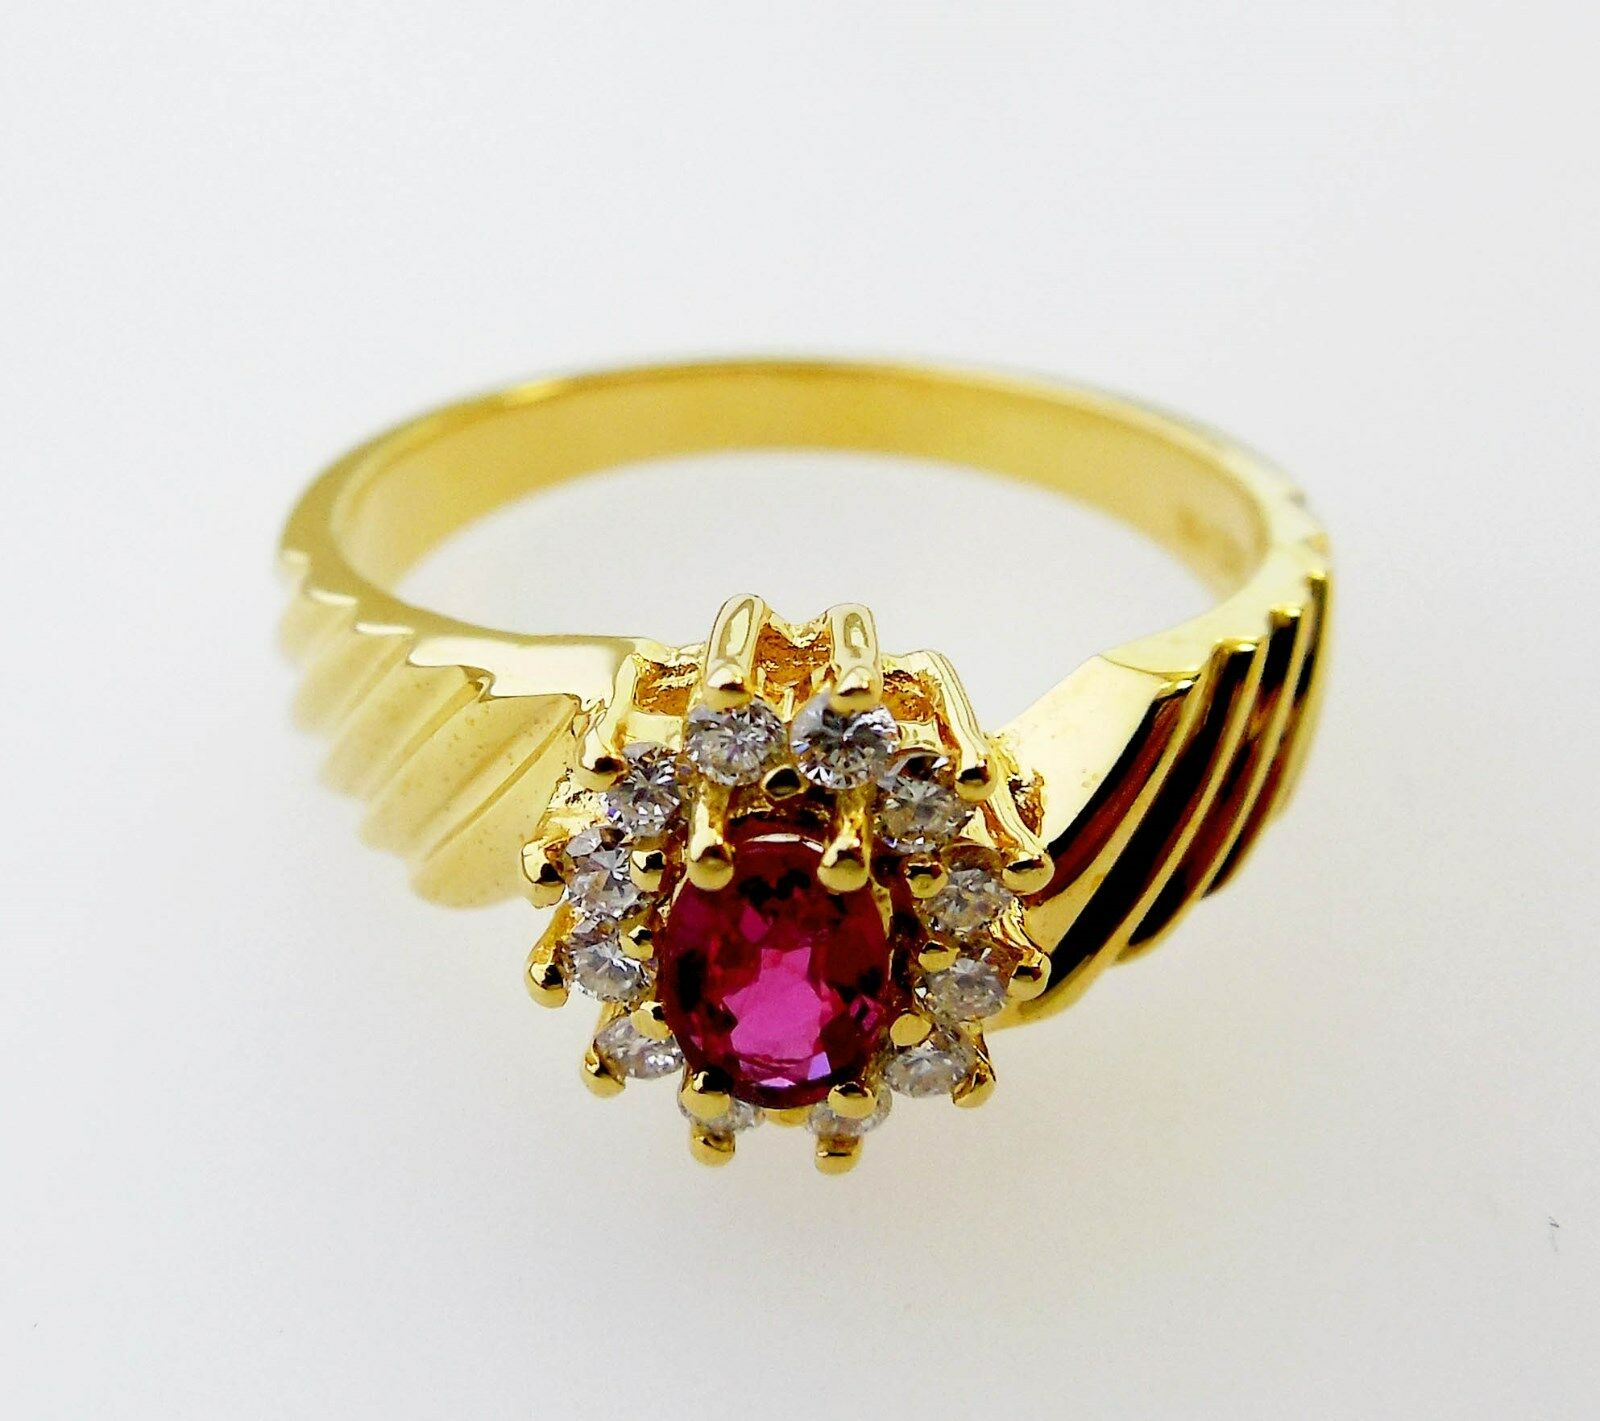 14KT YELLOW gold CHARMING  LADIES RUBY AND DIAMONDS RING (10686R)